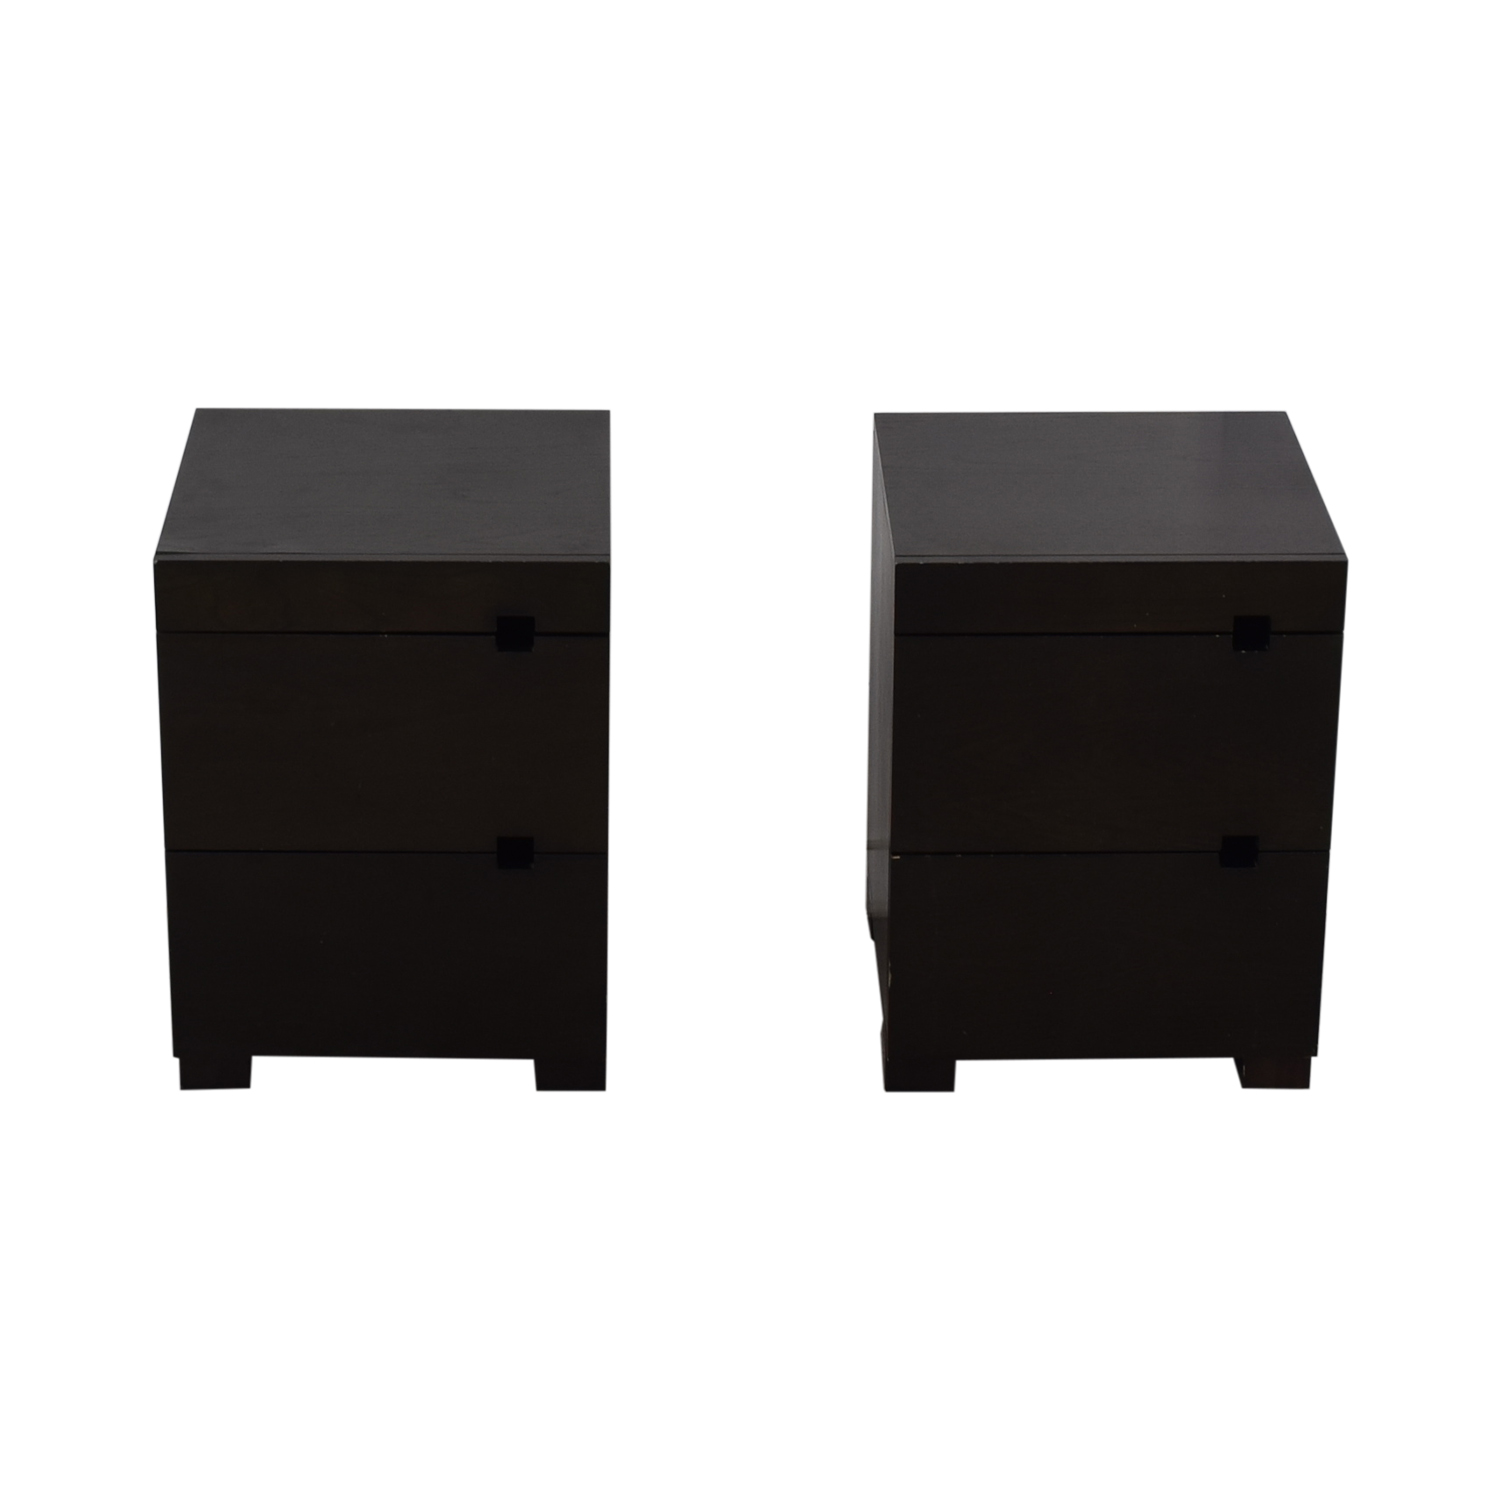 West Elm West Elm Square Cutout Chocolate-Stained Veneer Nightstands coupon